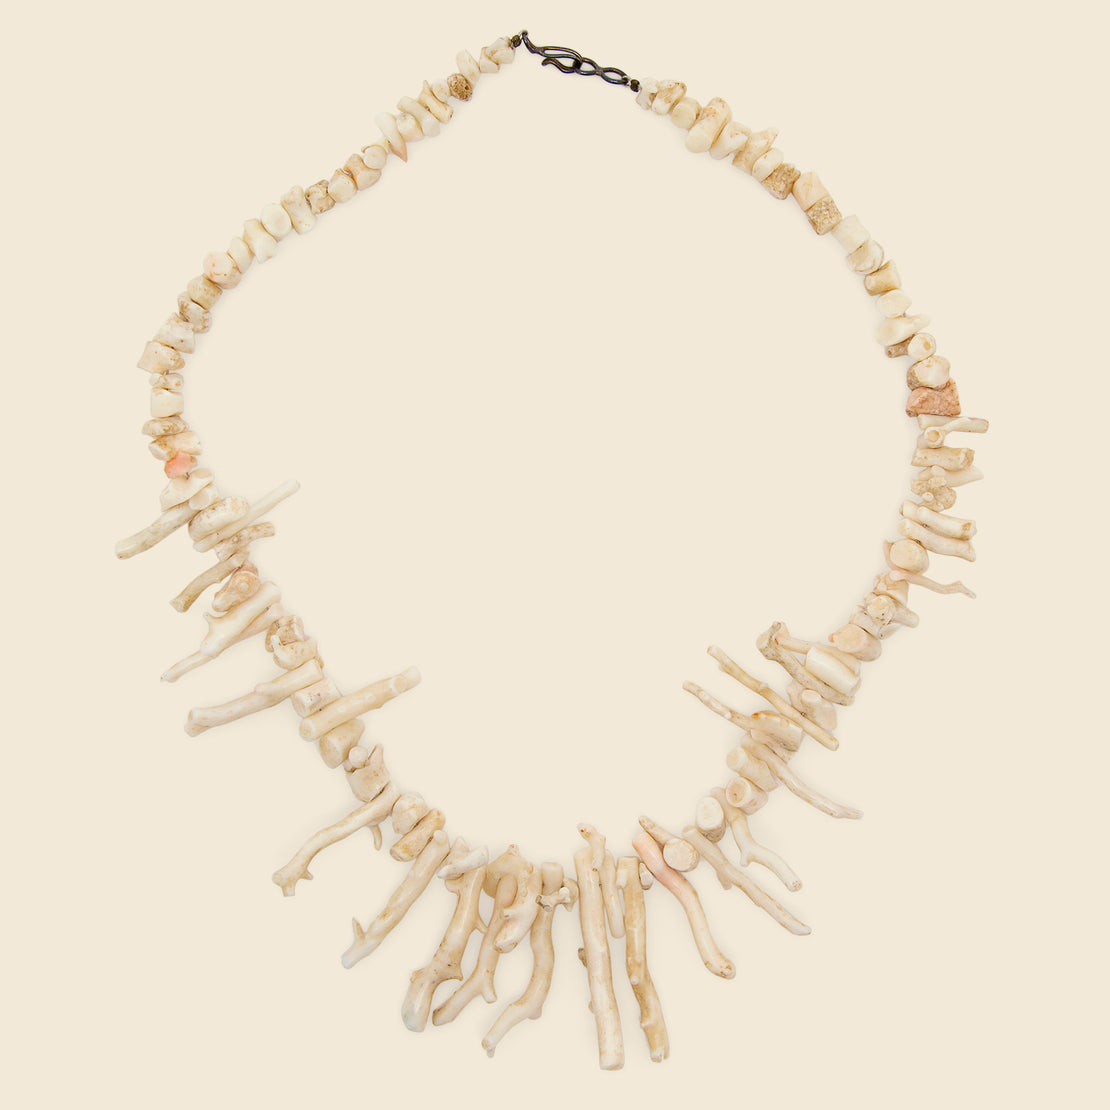 Vintage White Coral Necklace